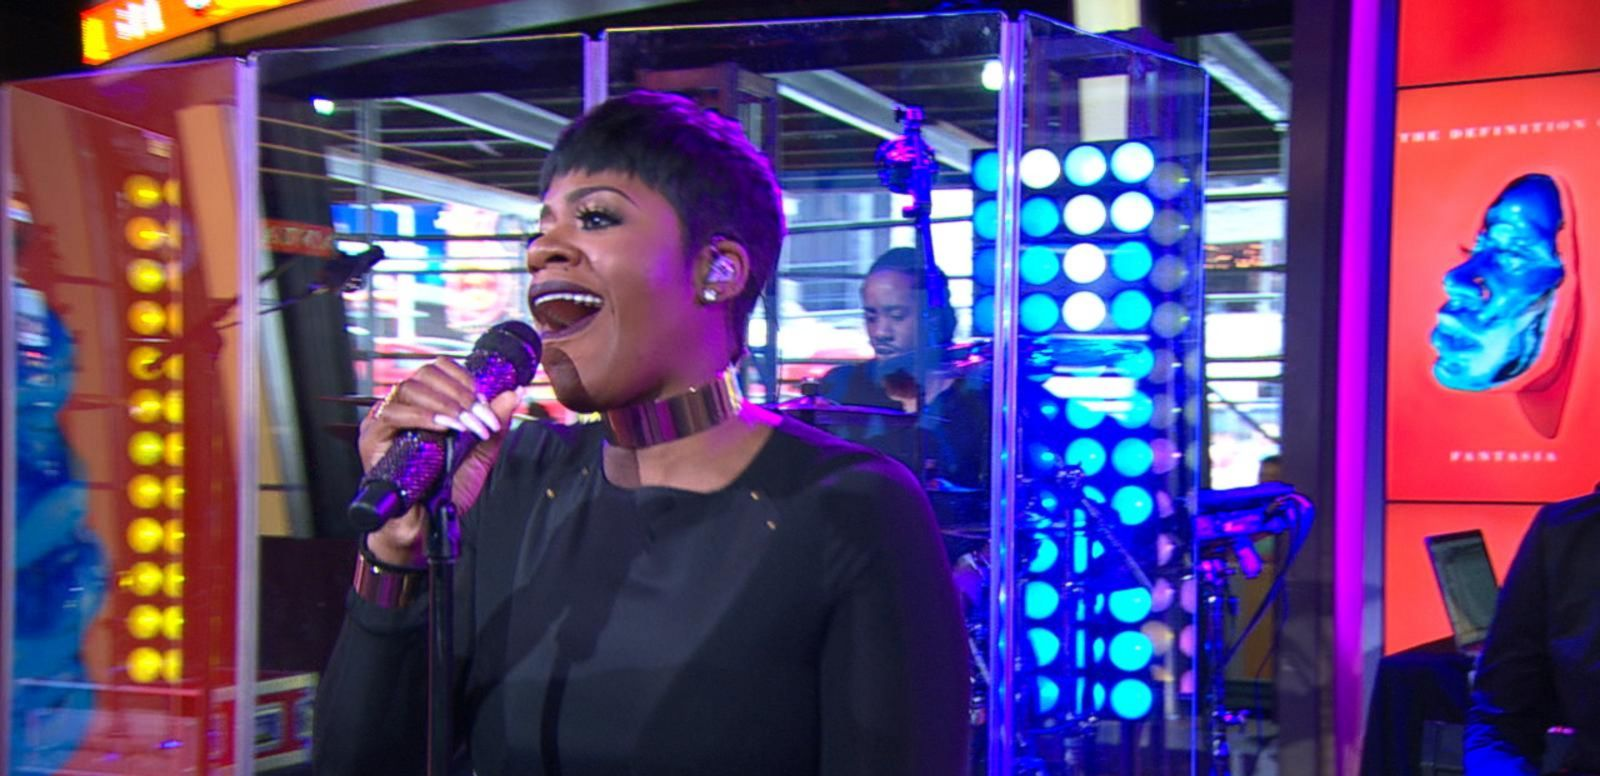 VIDEO: Fantasia Sings 'I Made It' on 'GMA'